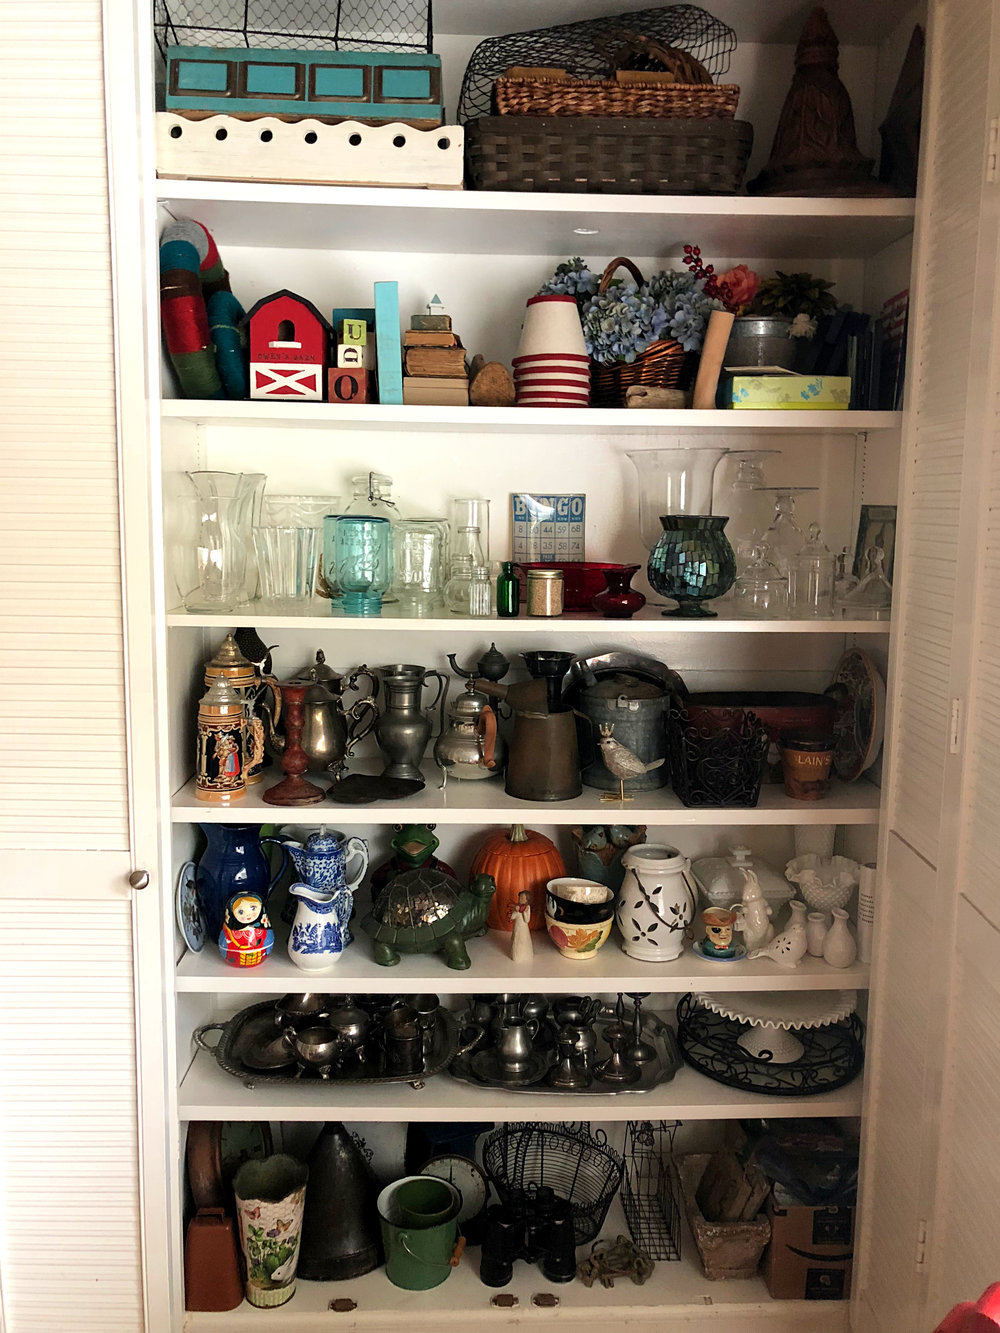 Before you head out to buy more stuff, check your stash of decor items. Taking the time to organize it by material (metal, ceramic, wood) will make choosing items easier.